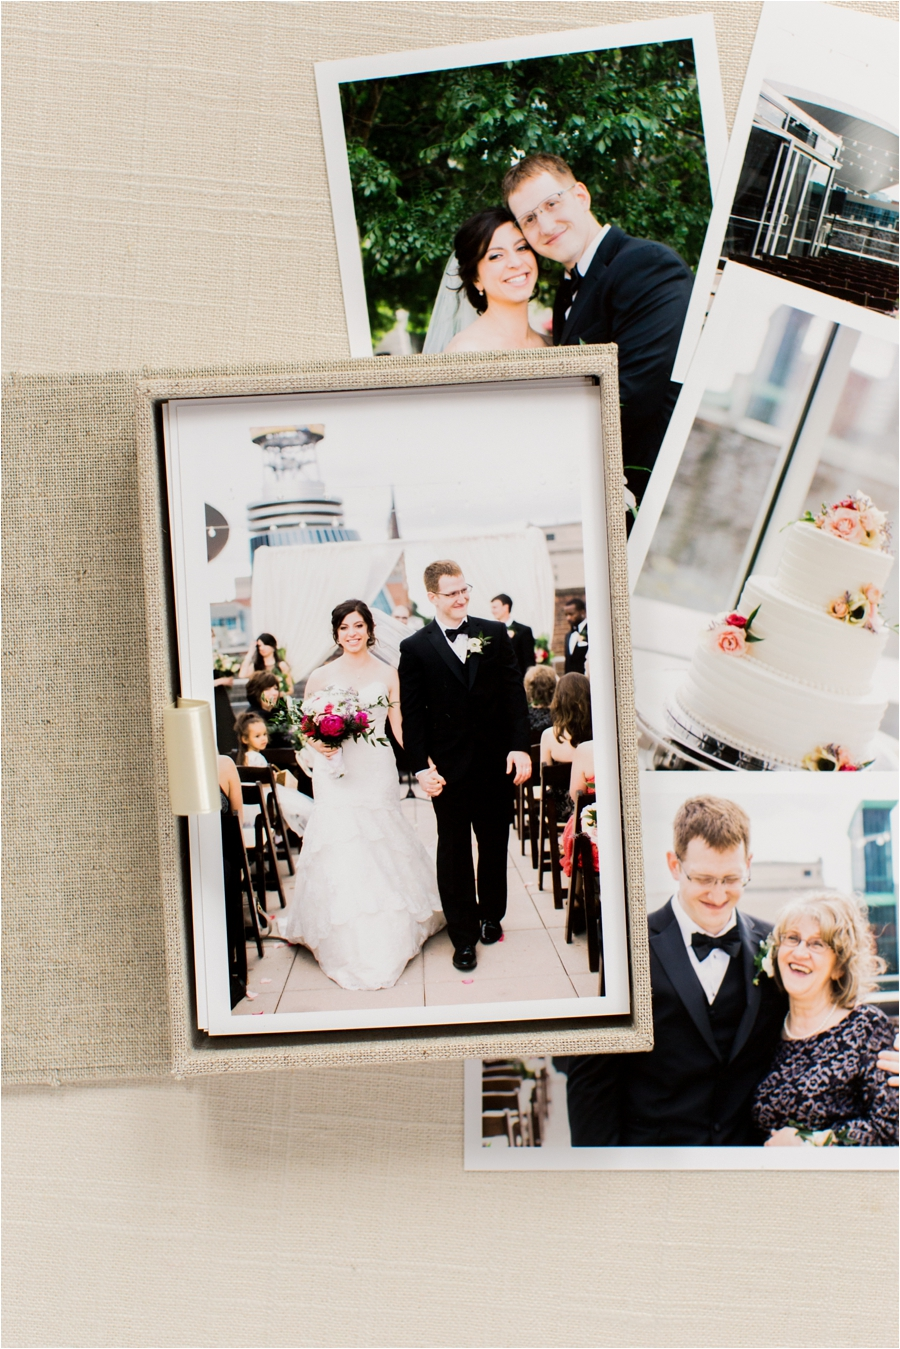 fine-art-wedding-album-book-by-charlottesville-wedding-and-family-photographer-amy-nicole-photography_0024